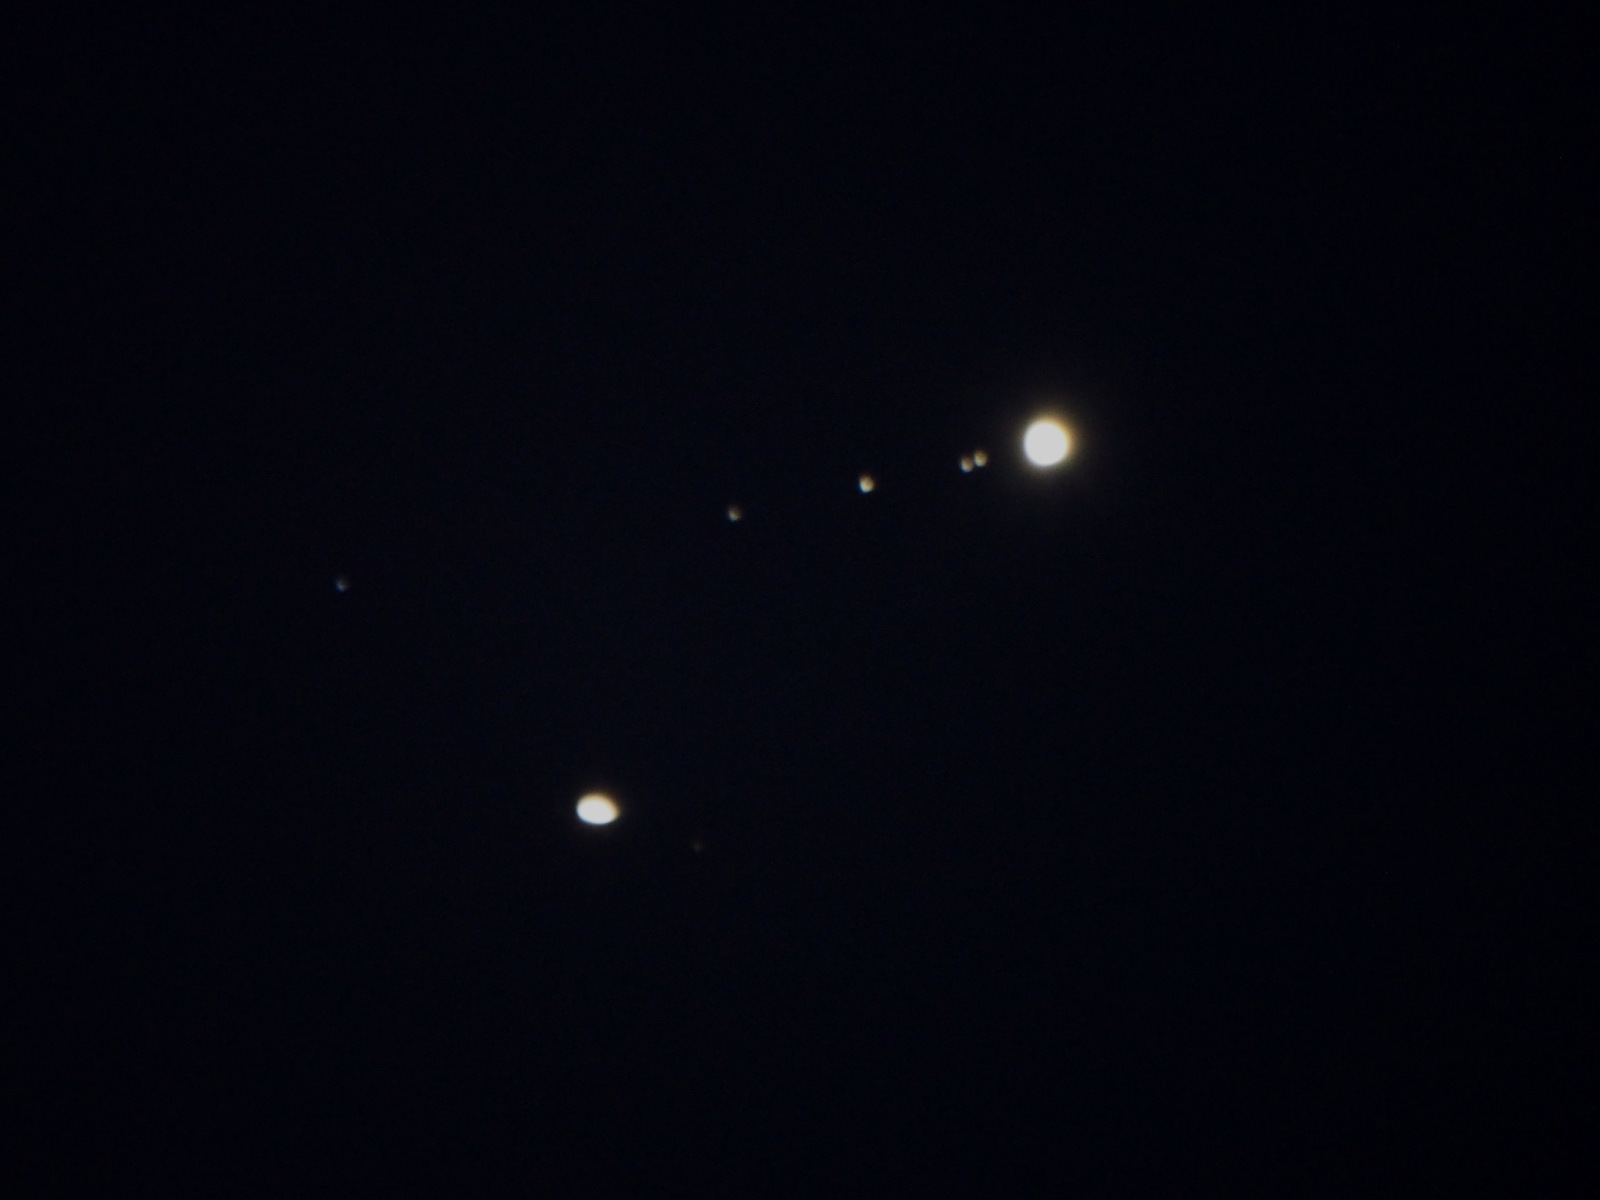 kc-pc196328a - Jupiter and Saturn on Dec 19